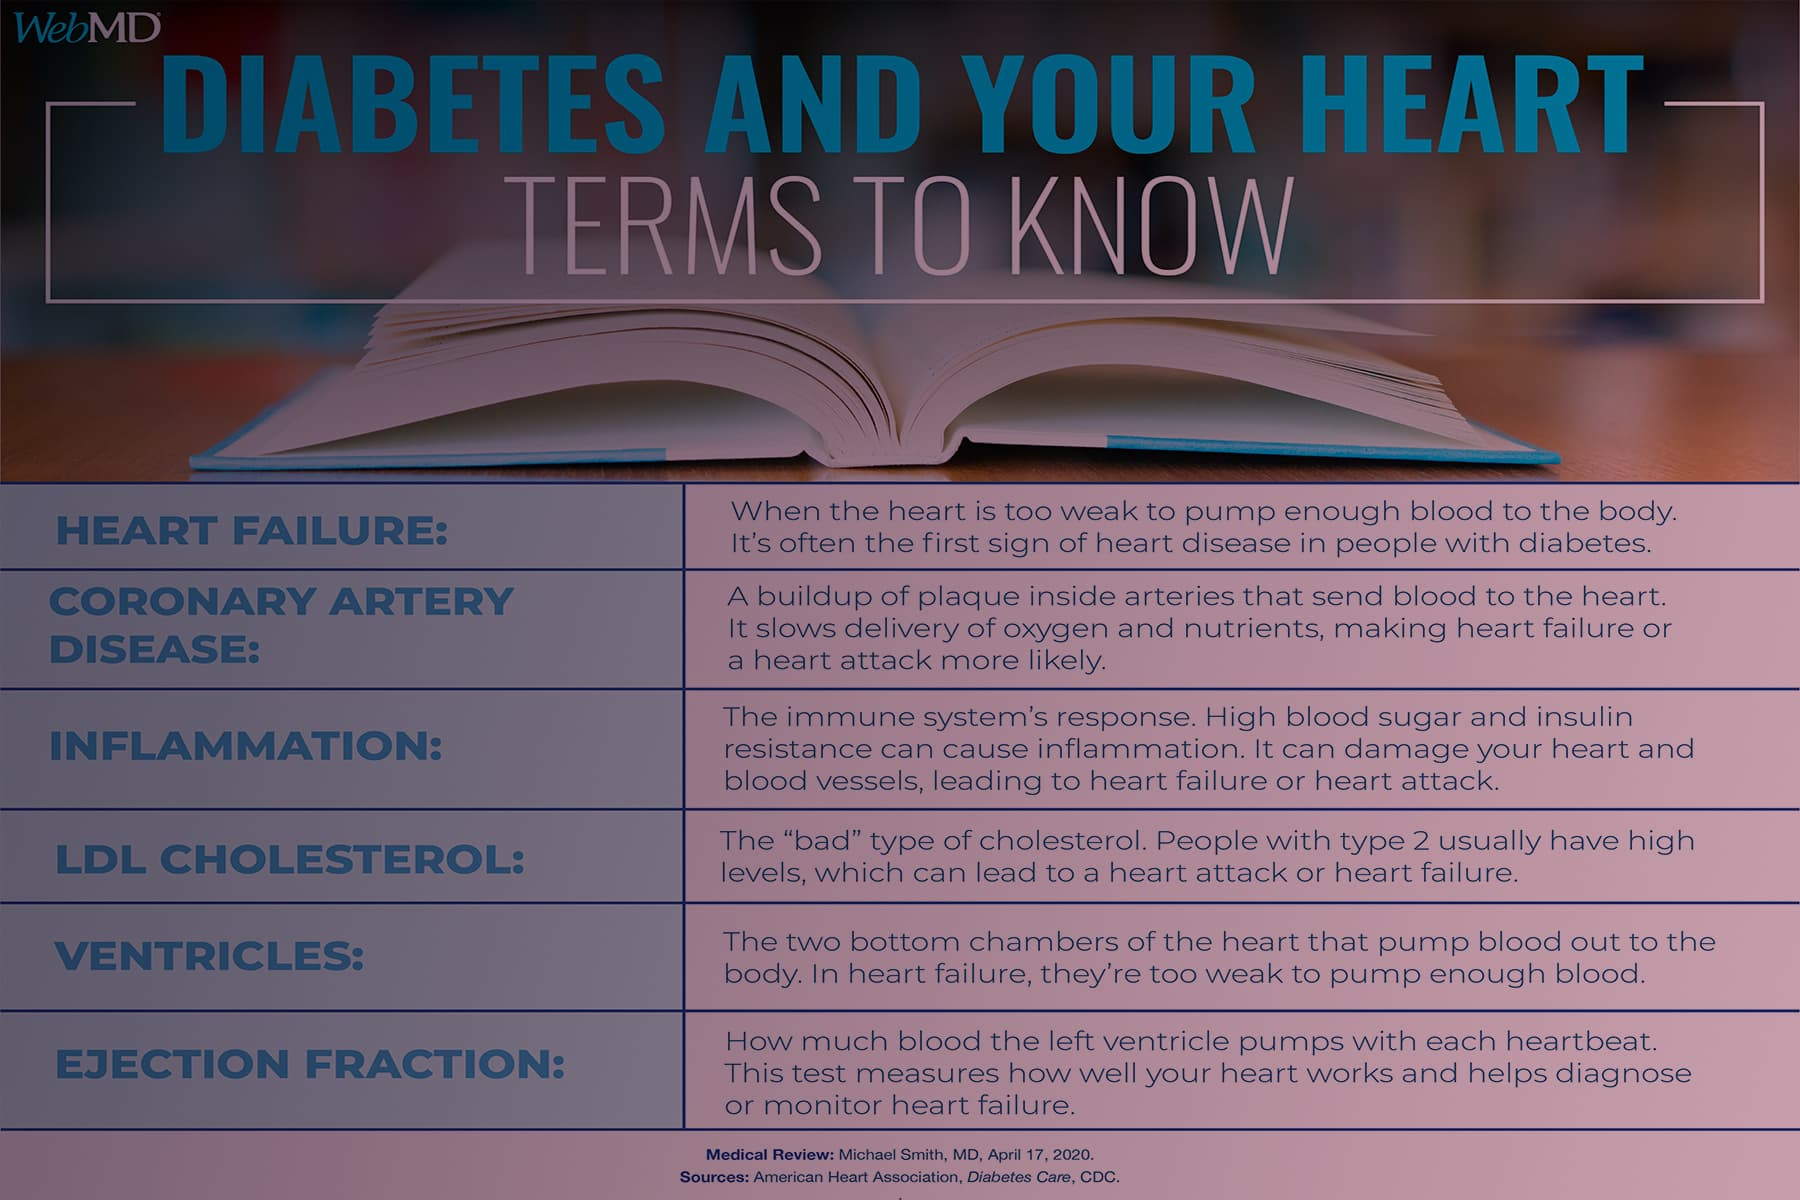 Diabetes and Heart Terms to Know